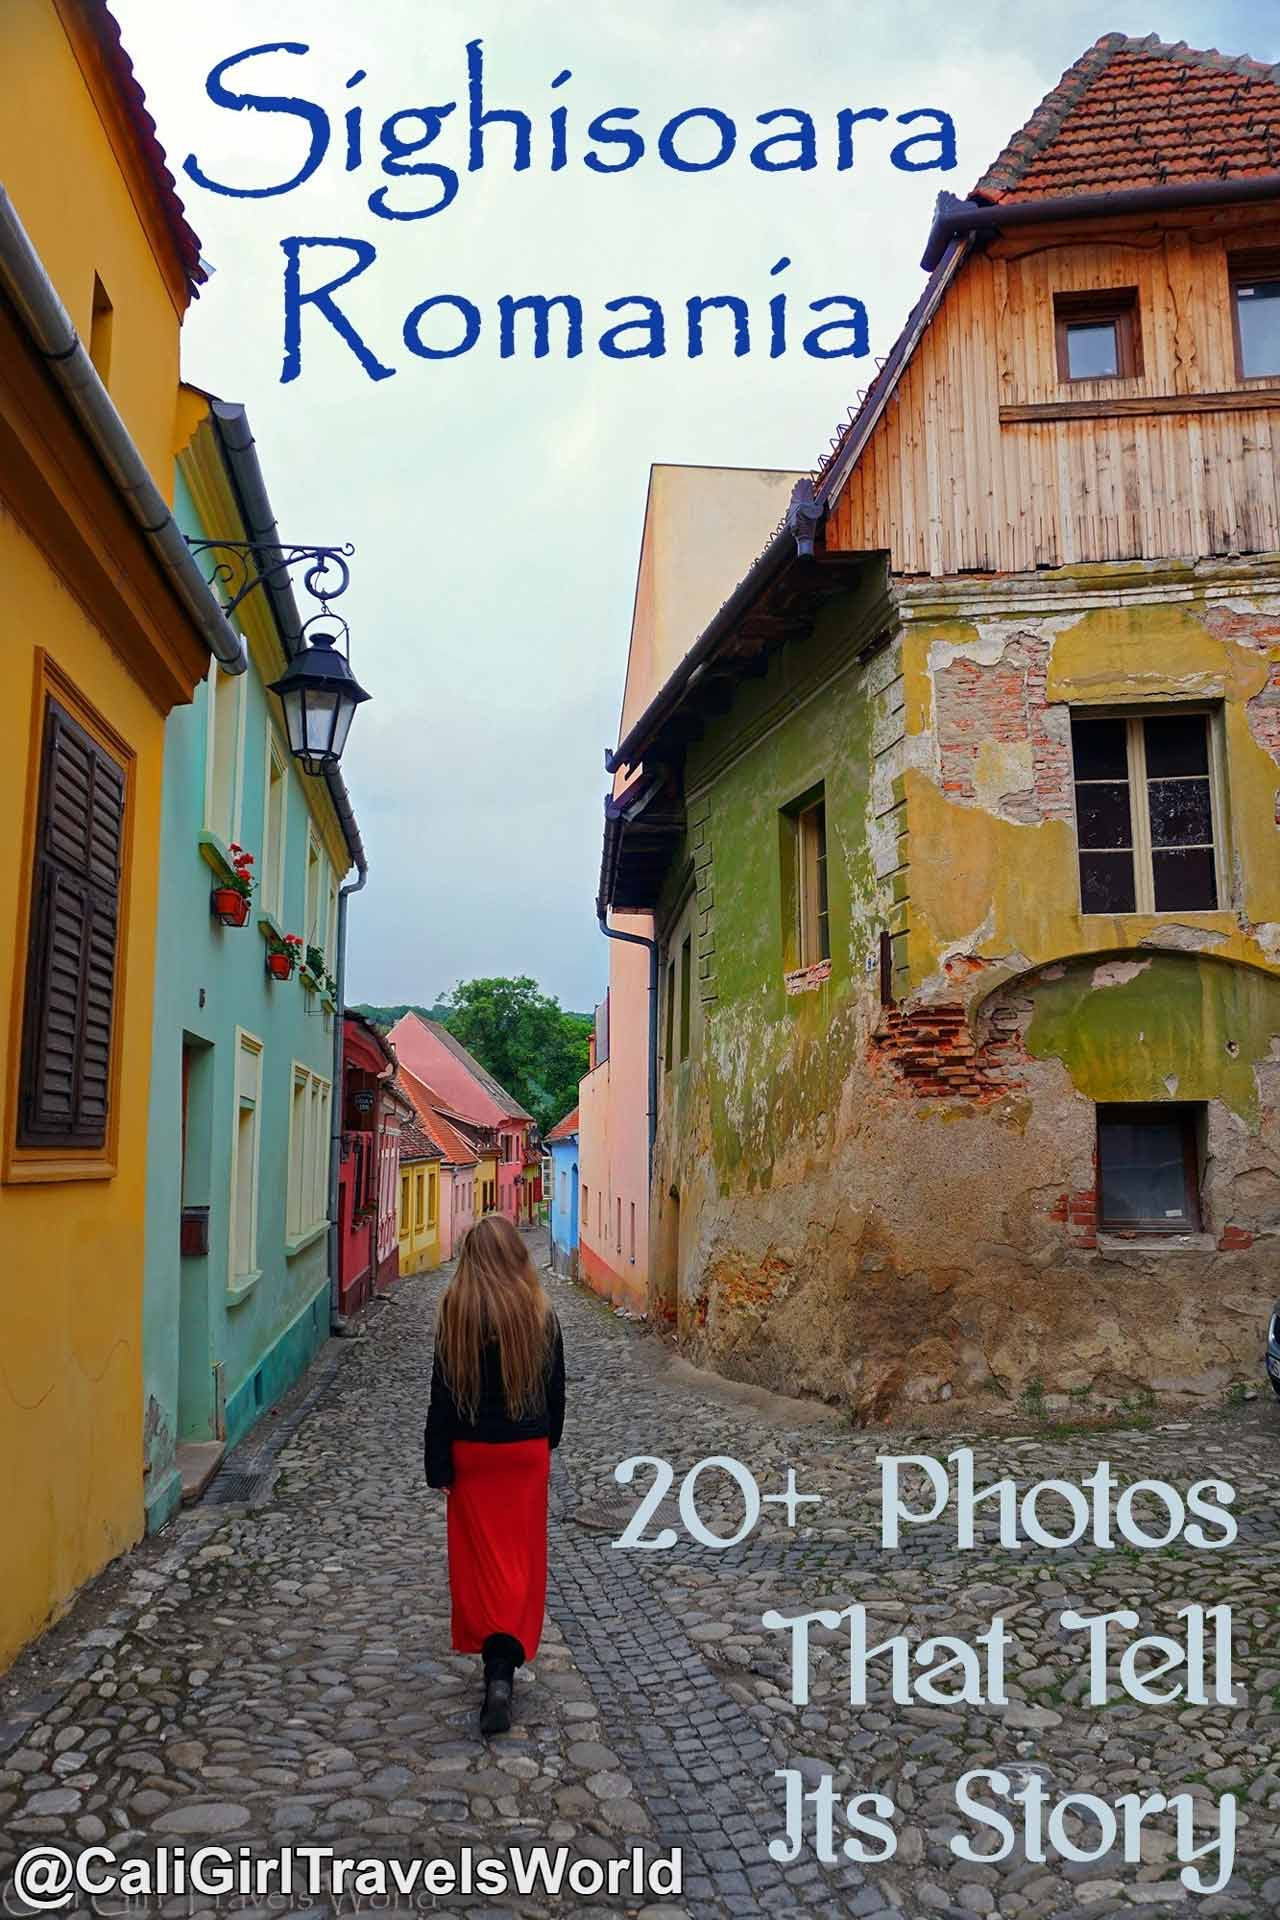 Walking down the colorful picturesque European streets of Sighisoara, Transylvania, Romania, a world heritage site.